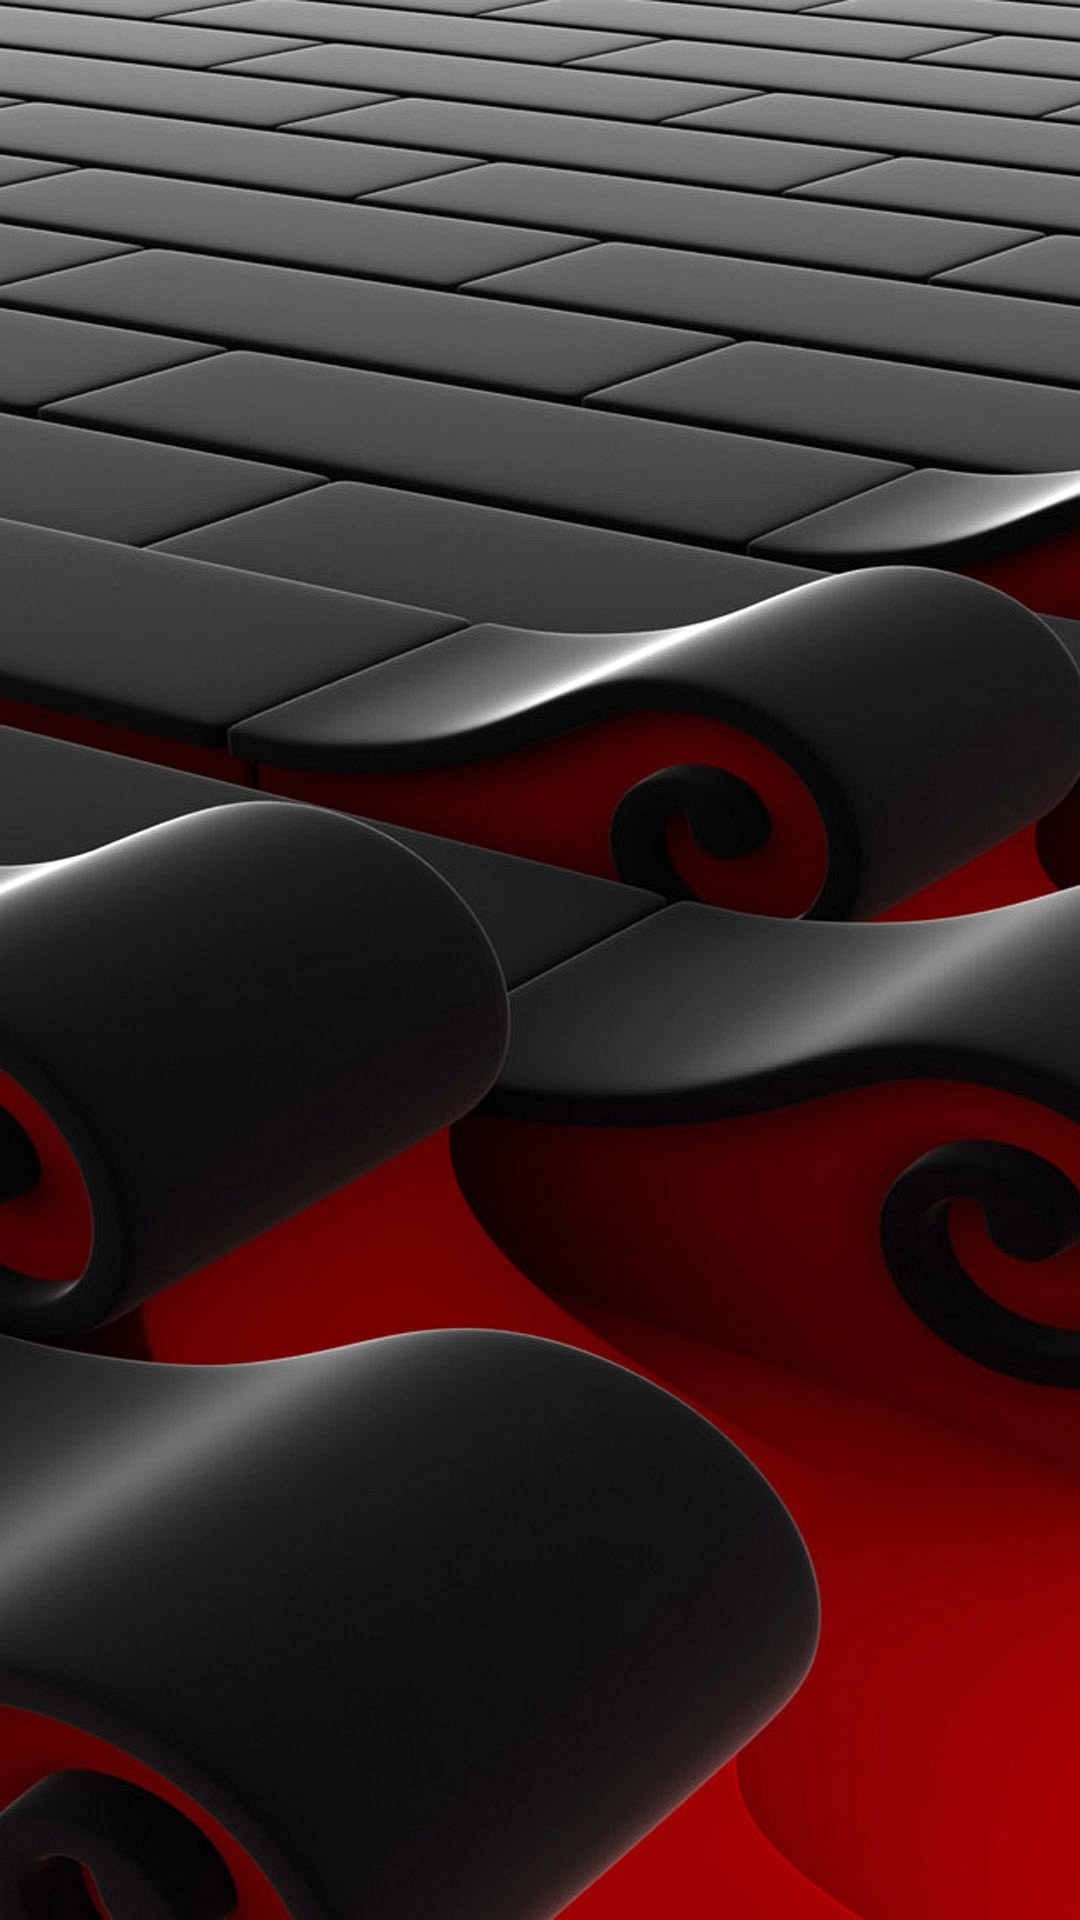 Cool phone wallpapers 08 of 10 for samsung galaxy a8 background with red and black 3d bricks - 3d wallpaper for note 8 ...